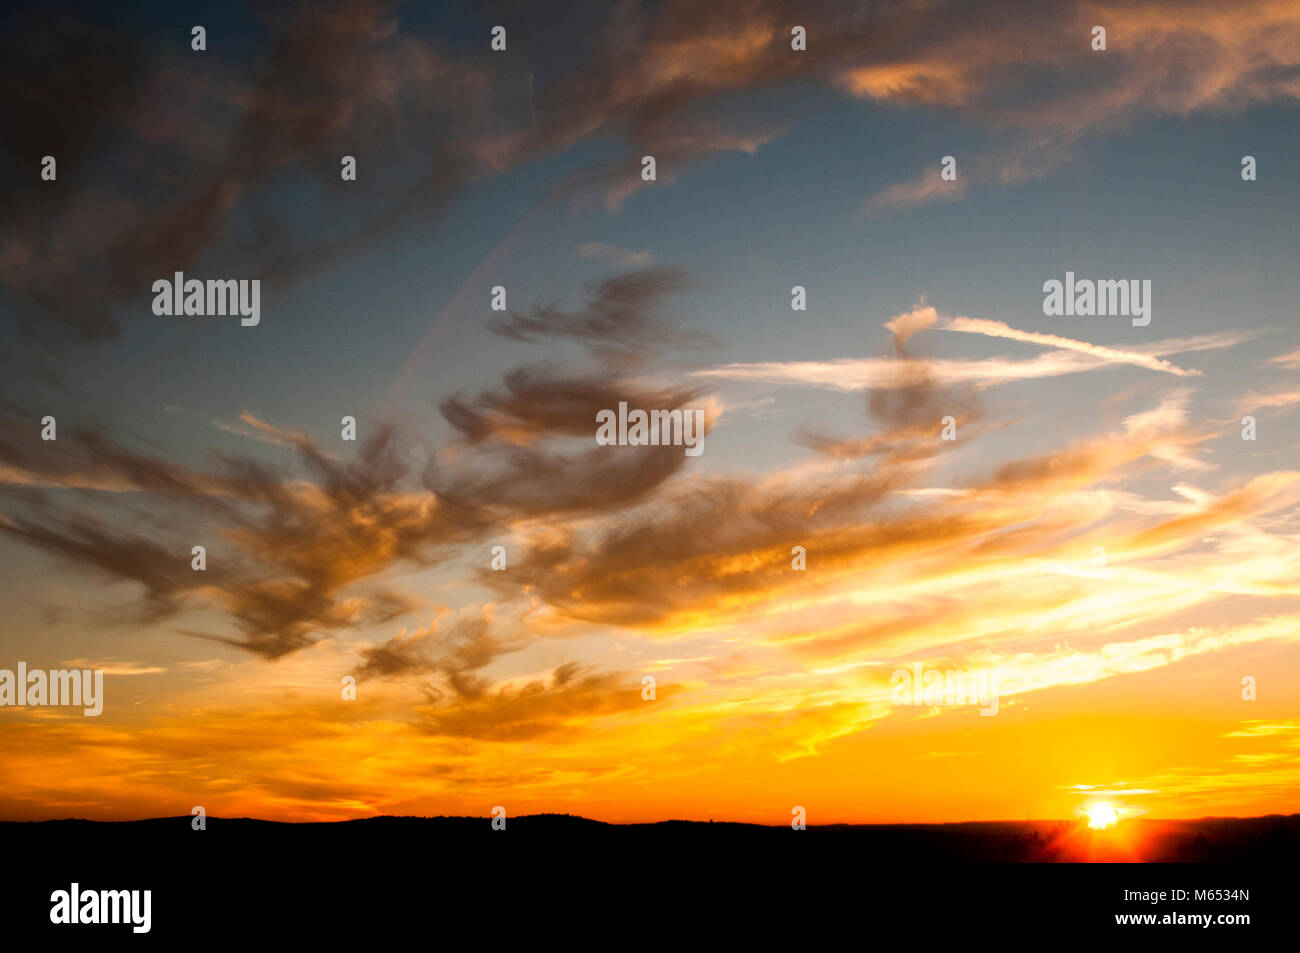 wallpaper, background, colorful, sunset, spain, cloudy, clous